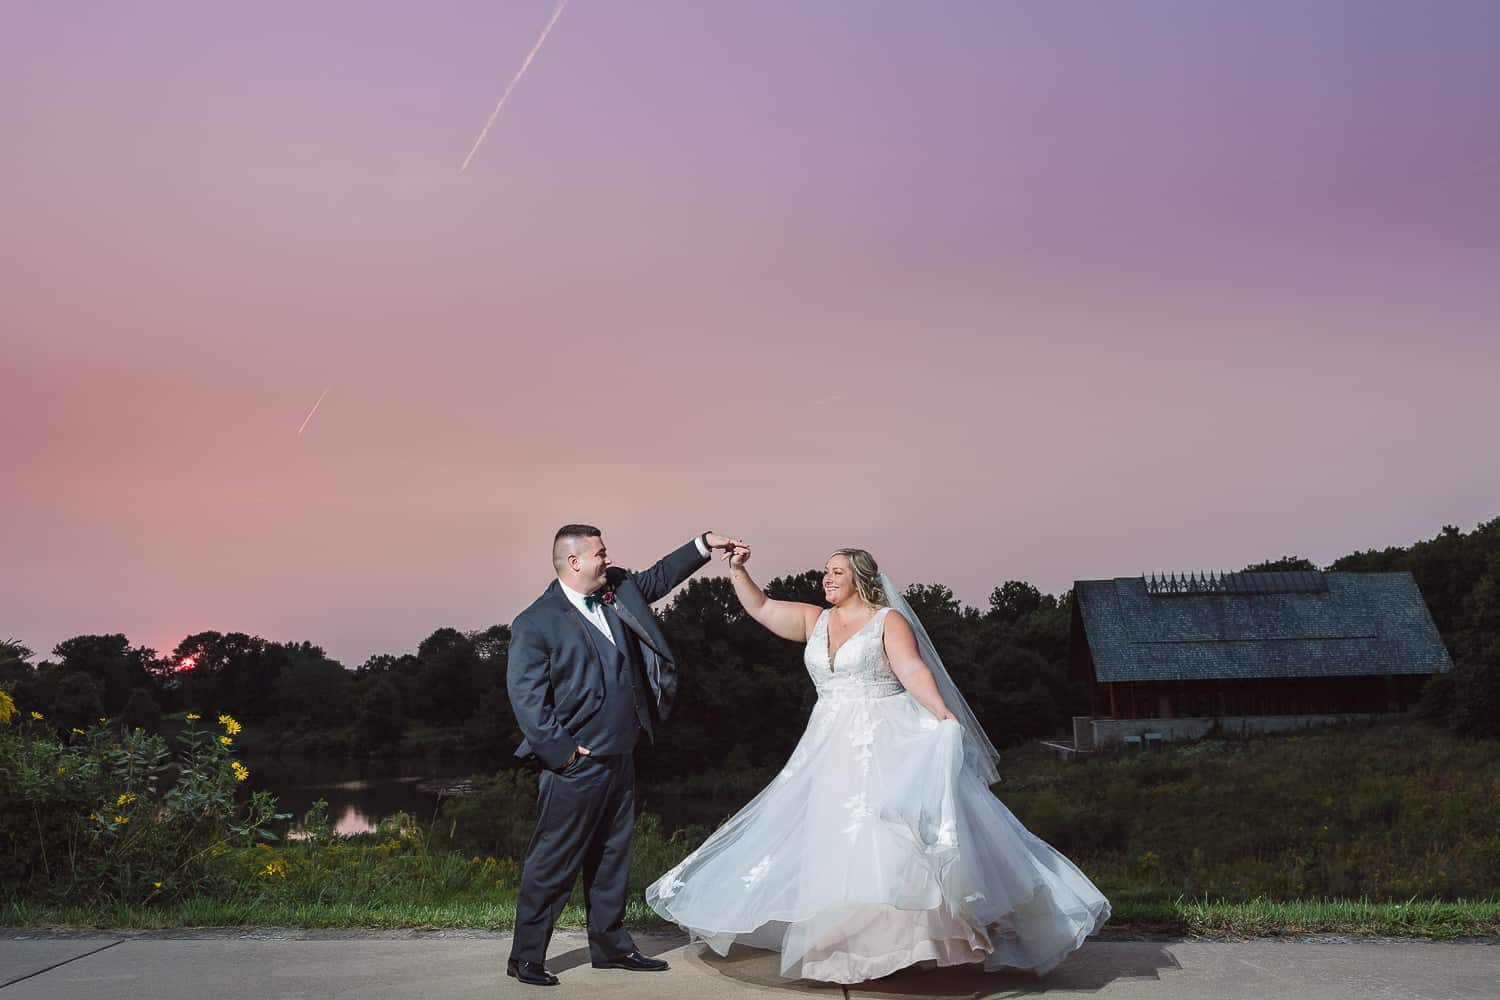 Sunset wedding pictures at Powell Gardens wedding